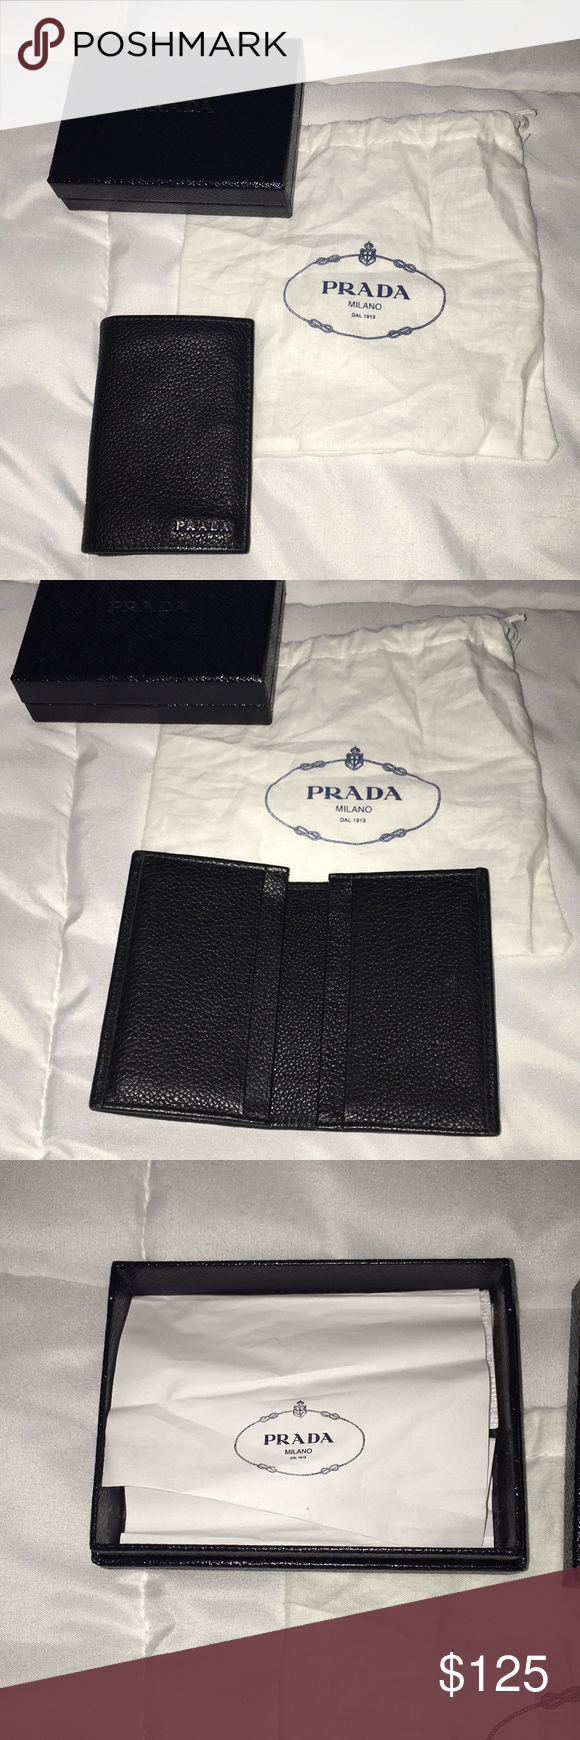 Prada business card holder | Business card holders, Business and ...